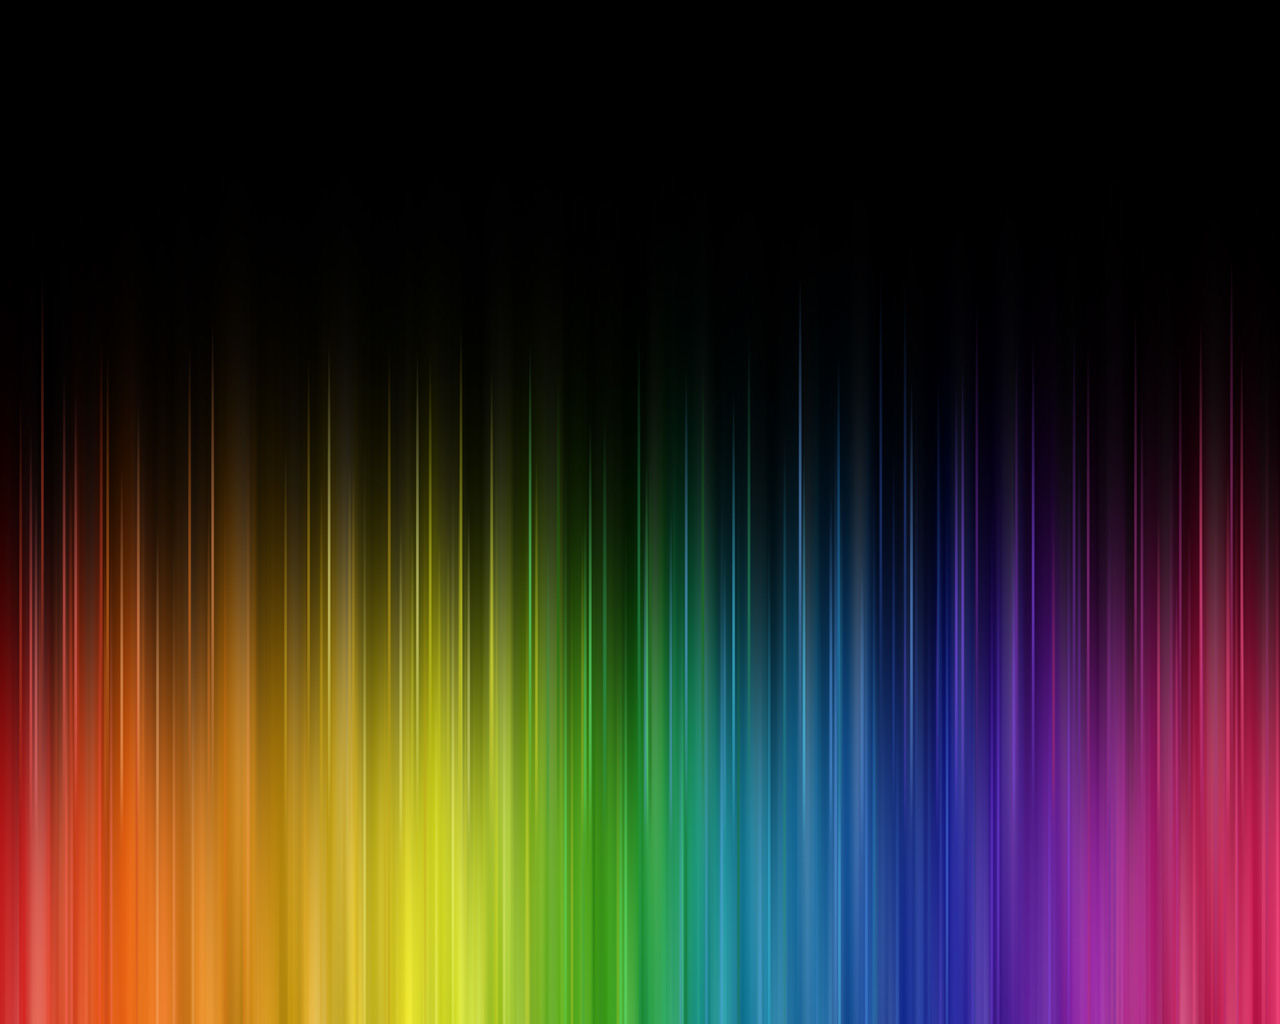 Rainbow Colors Wallpaper   Wallpapers Wallpaper 28469172 1280x1024